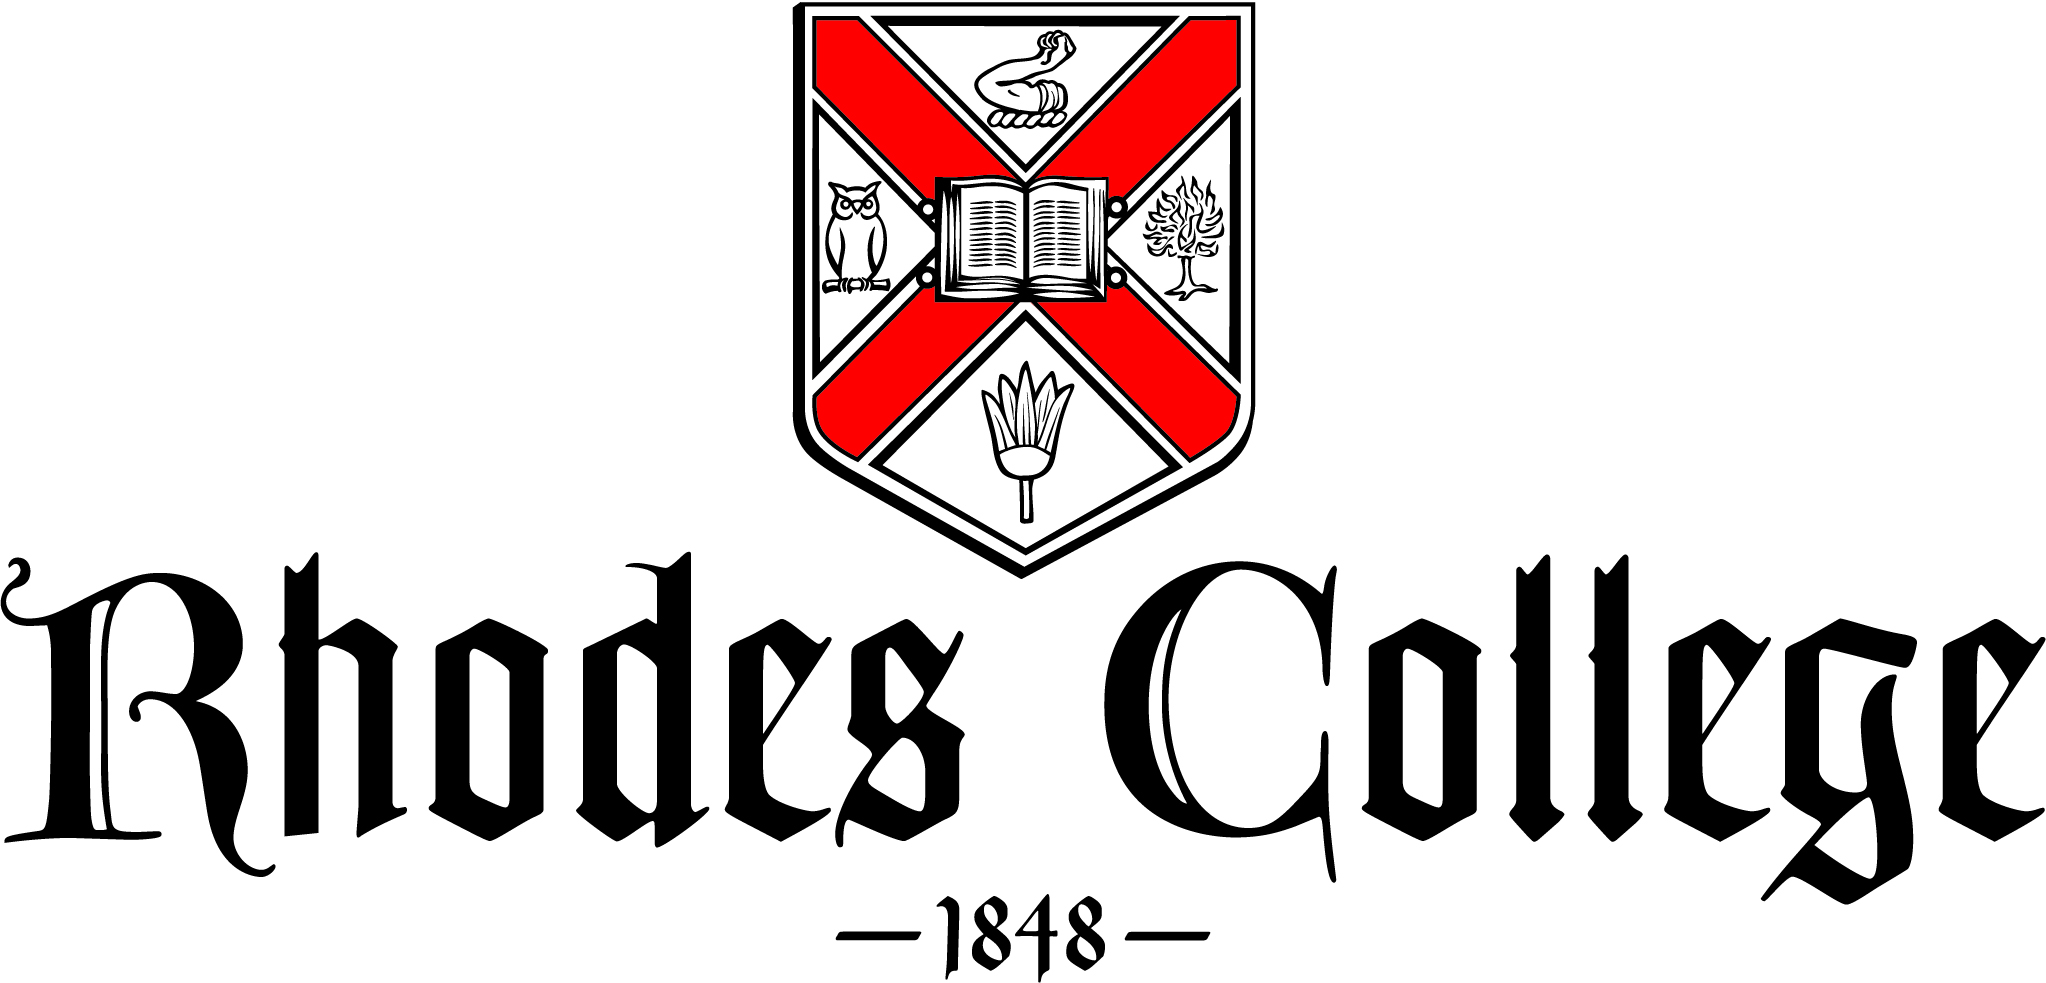 Sponsored by hte Mike Curb Institute for Music at Rhodes College